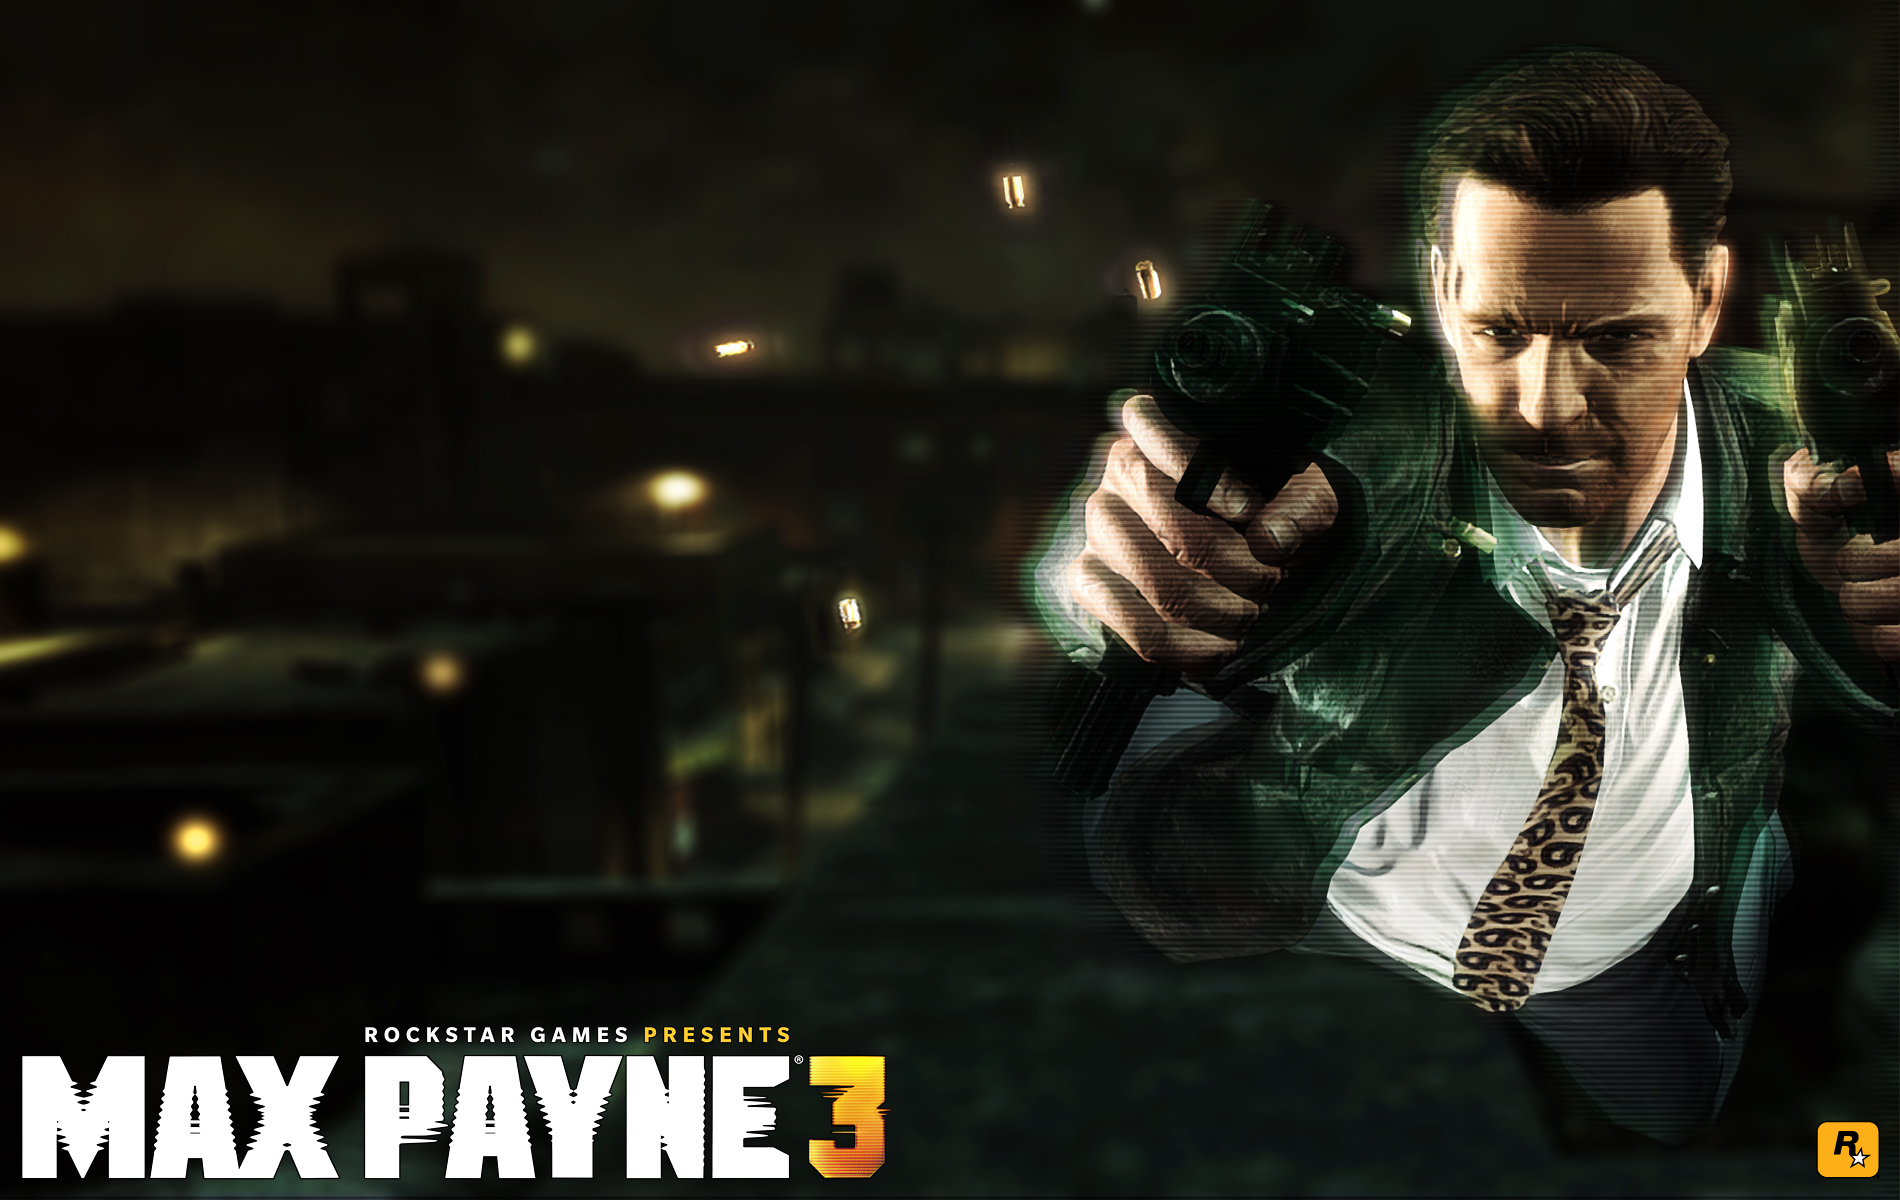 Free Download Max Payne 3 Wallpaper 1900x1200 For Your Desktop